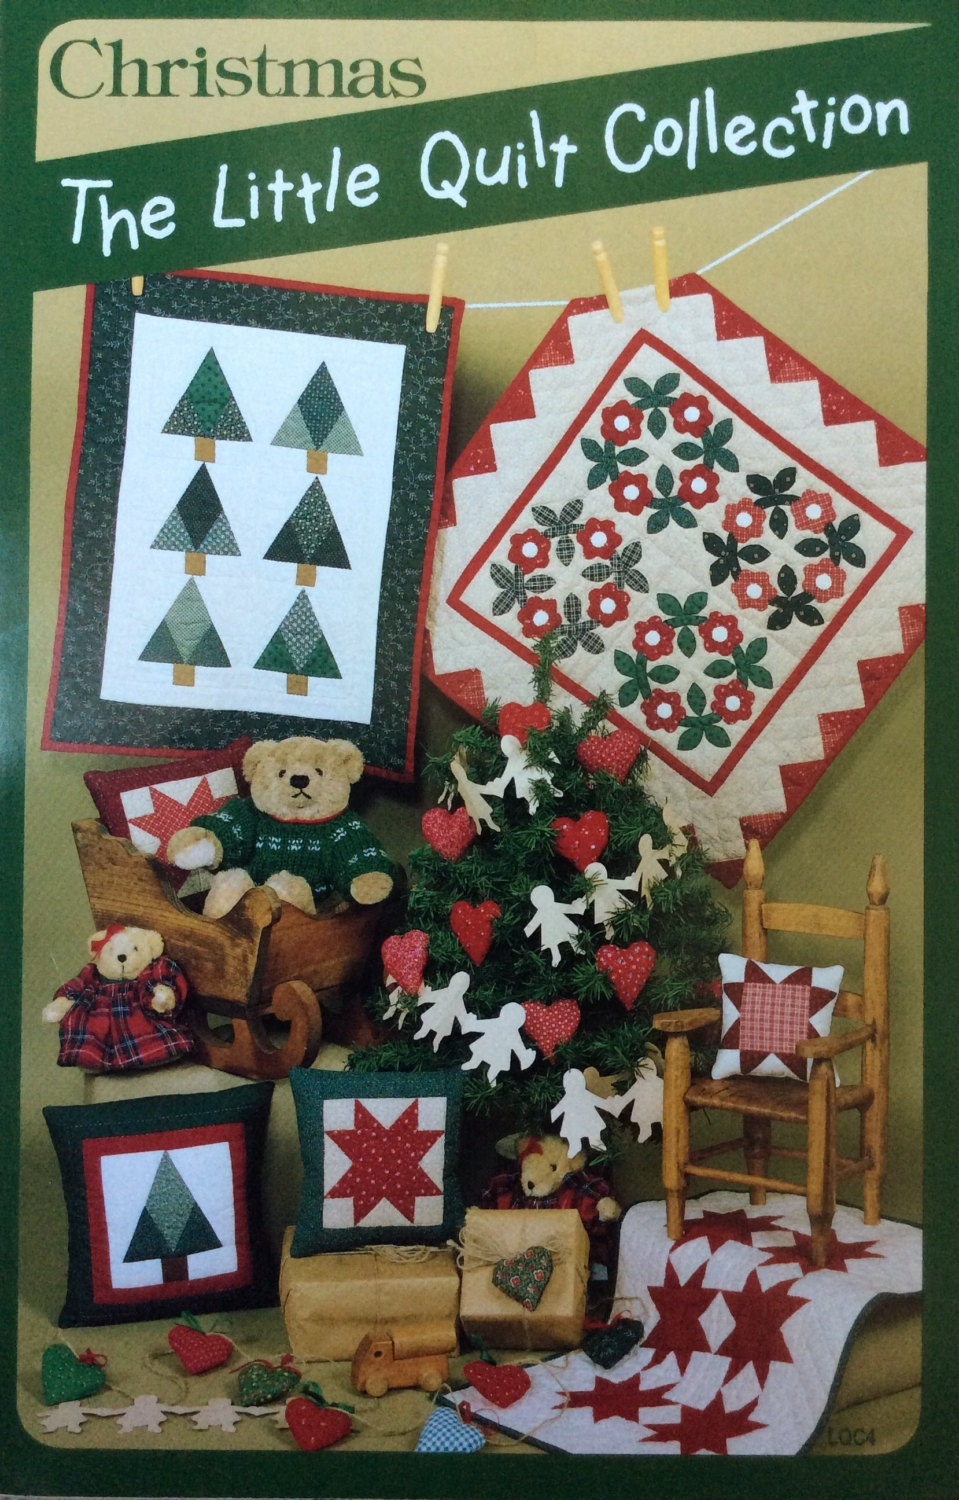 Christmas The Little Quilt Collection by Lonestarblondie on Etsy